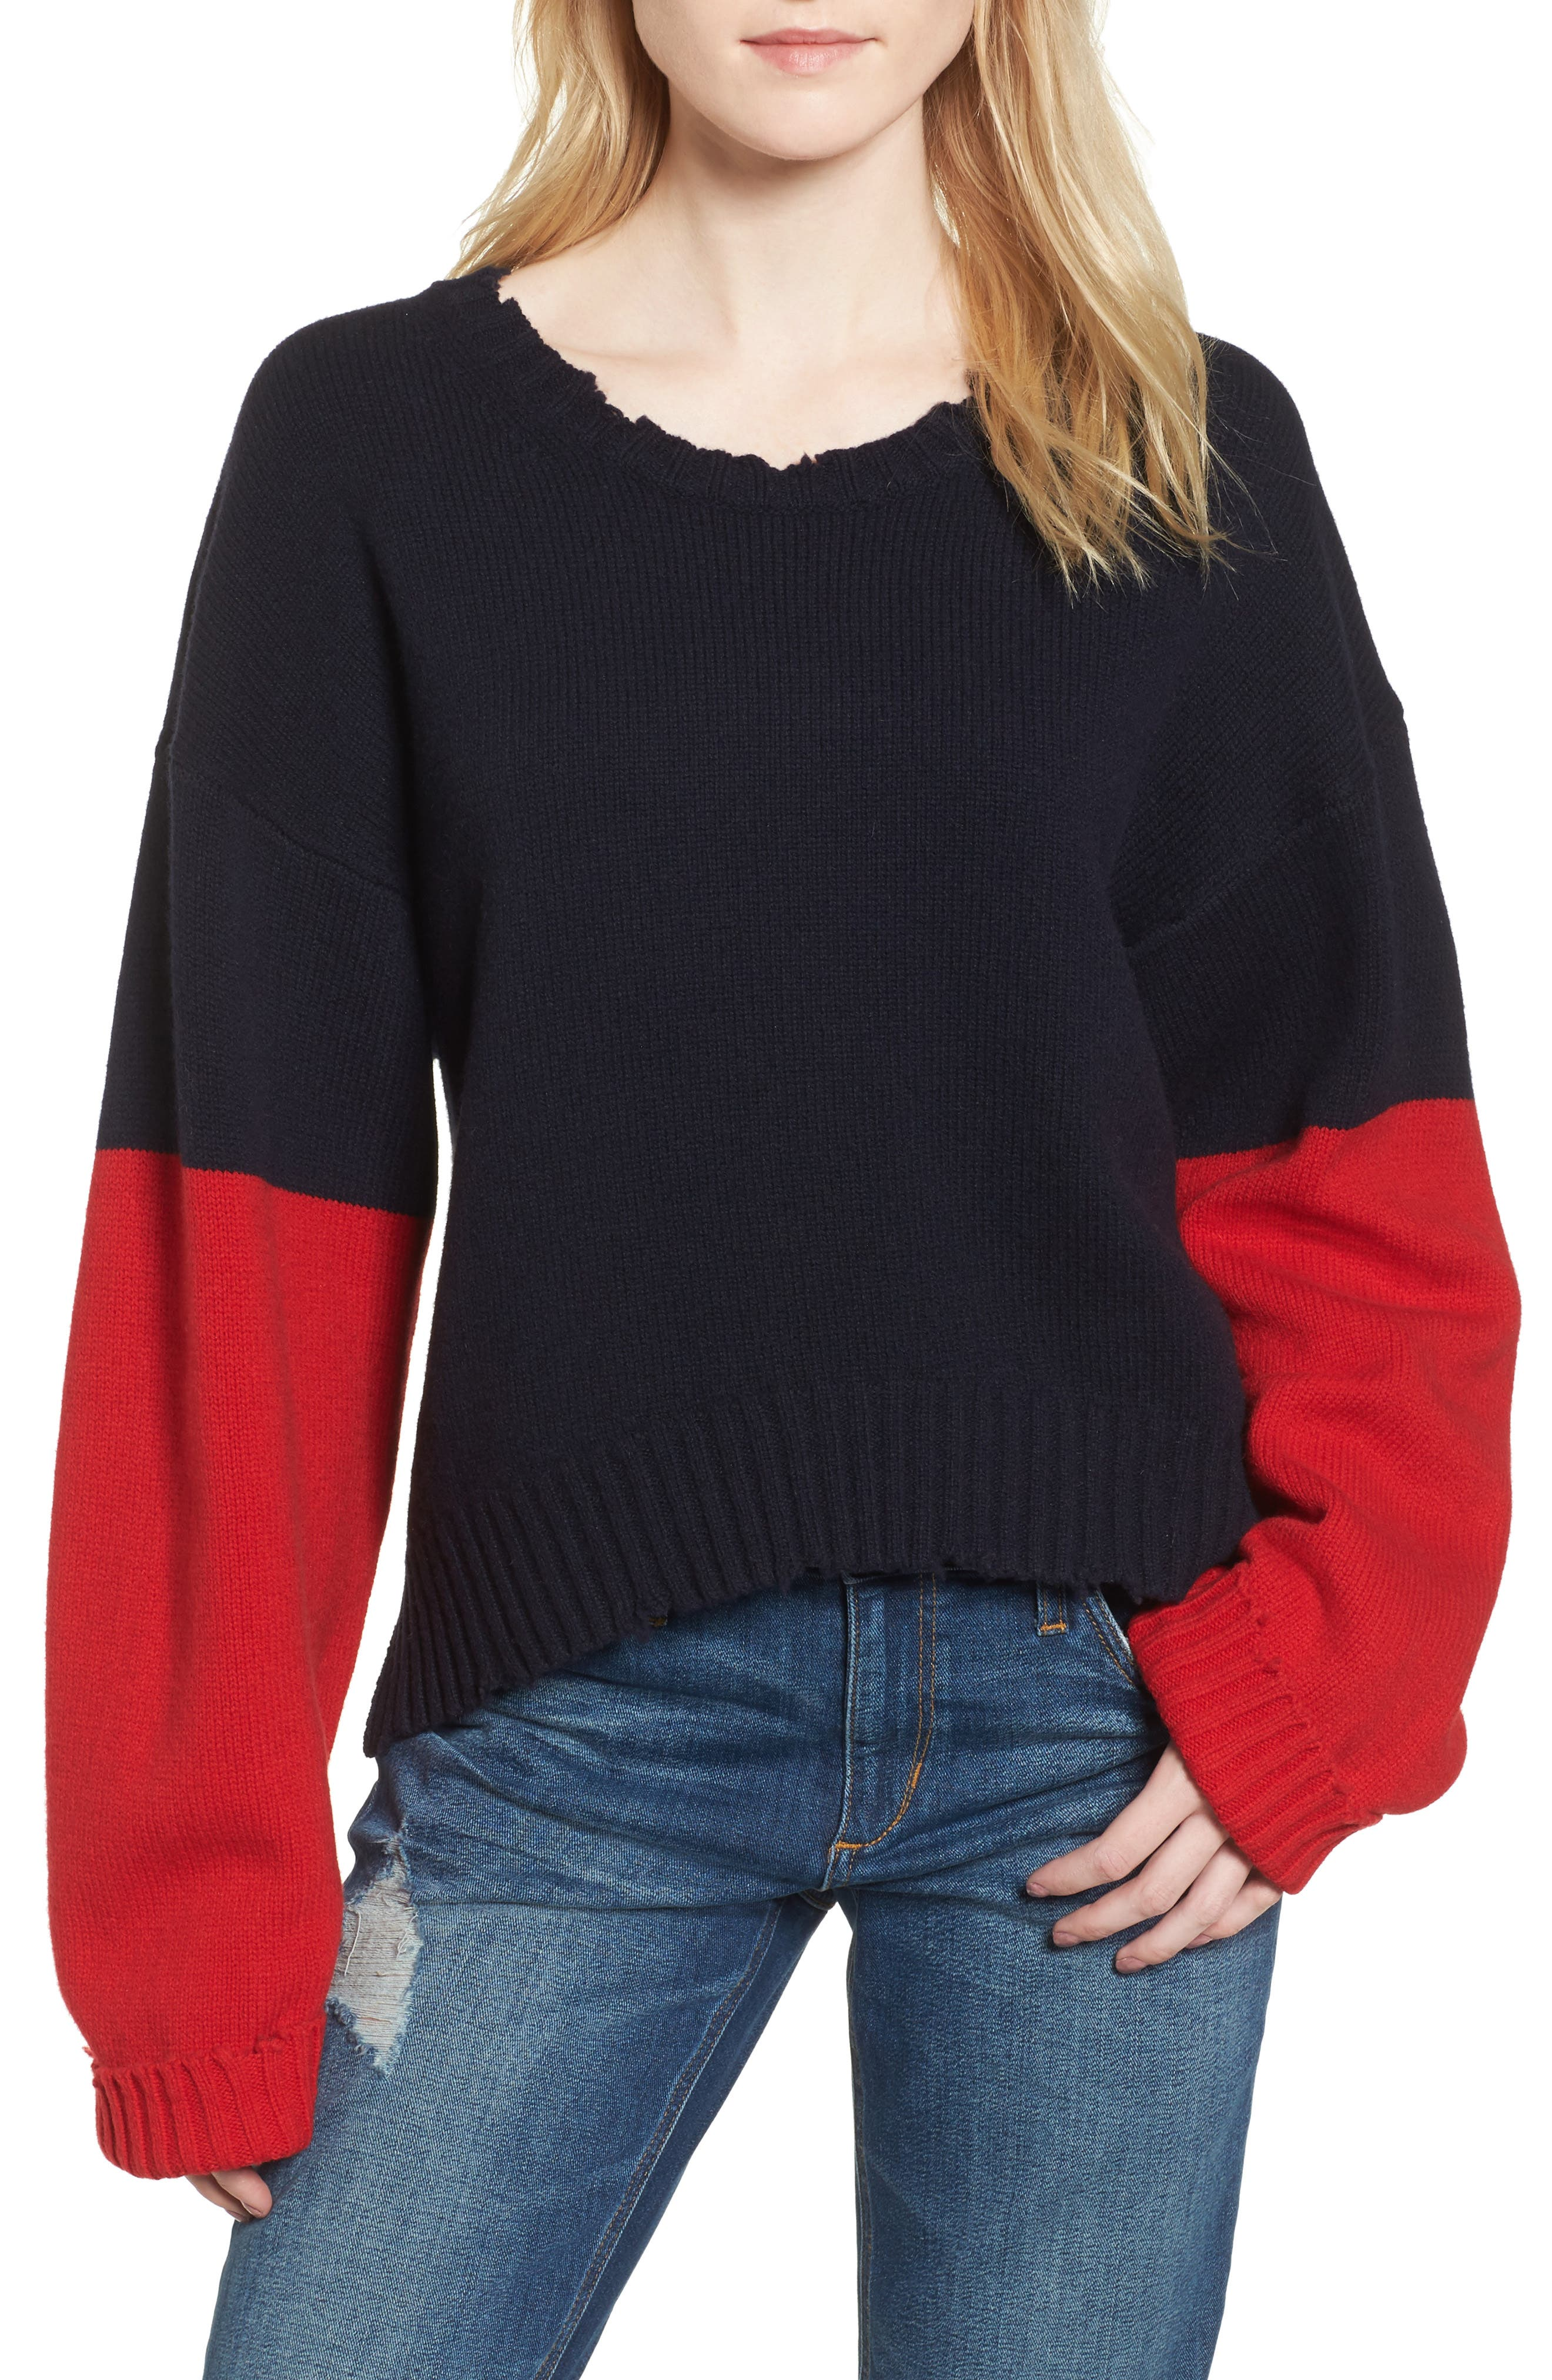 Clarys Sweater,                             Main thumbnail 1, color,